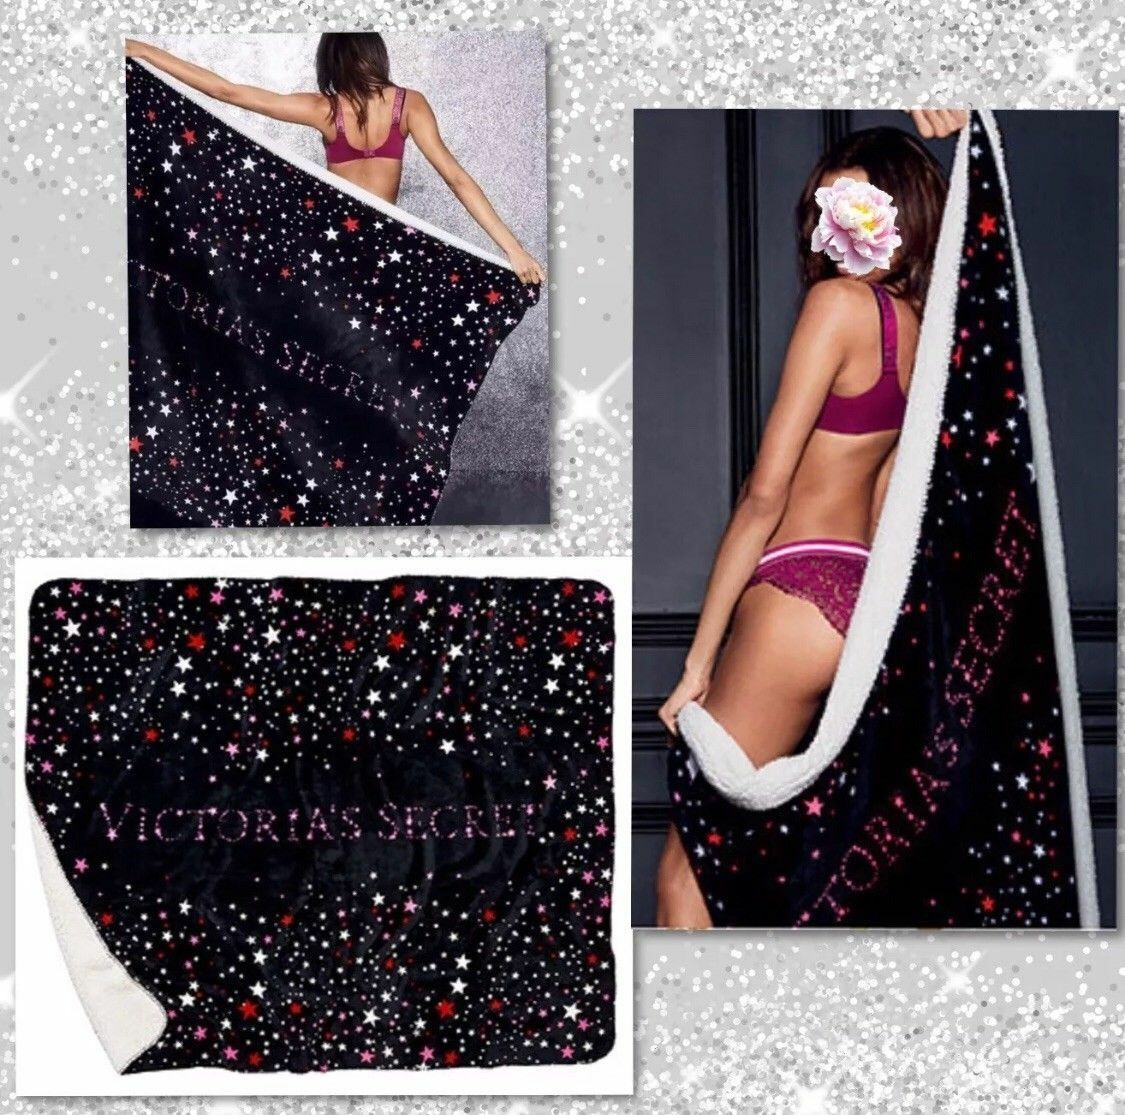 BRAND NEW SHERPA STARS BLANKET Victoria's Secret 50 x 60 in Limited Ed